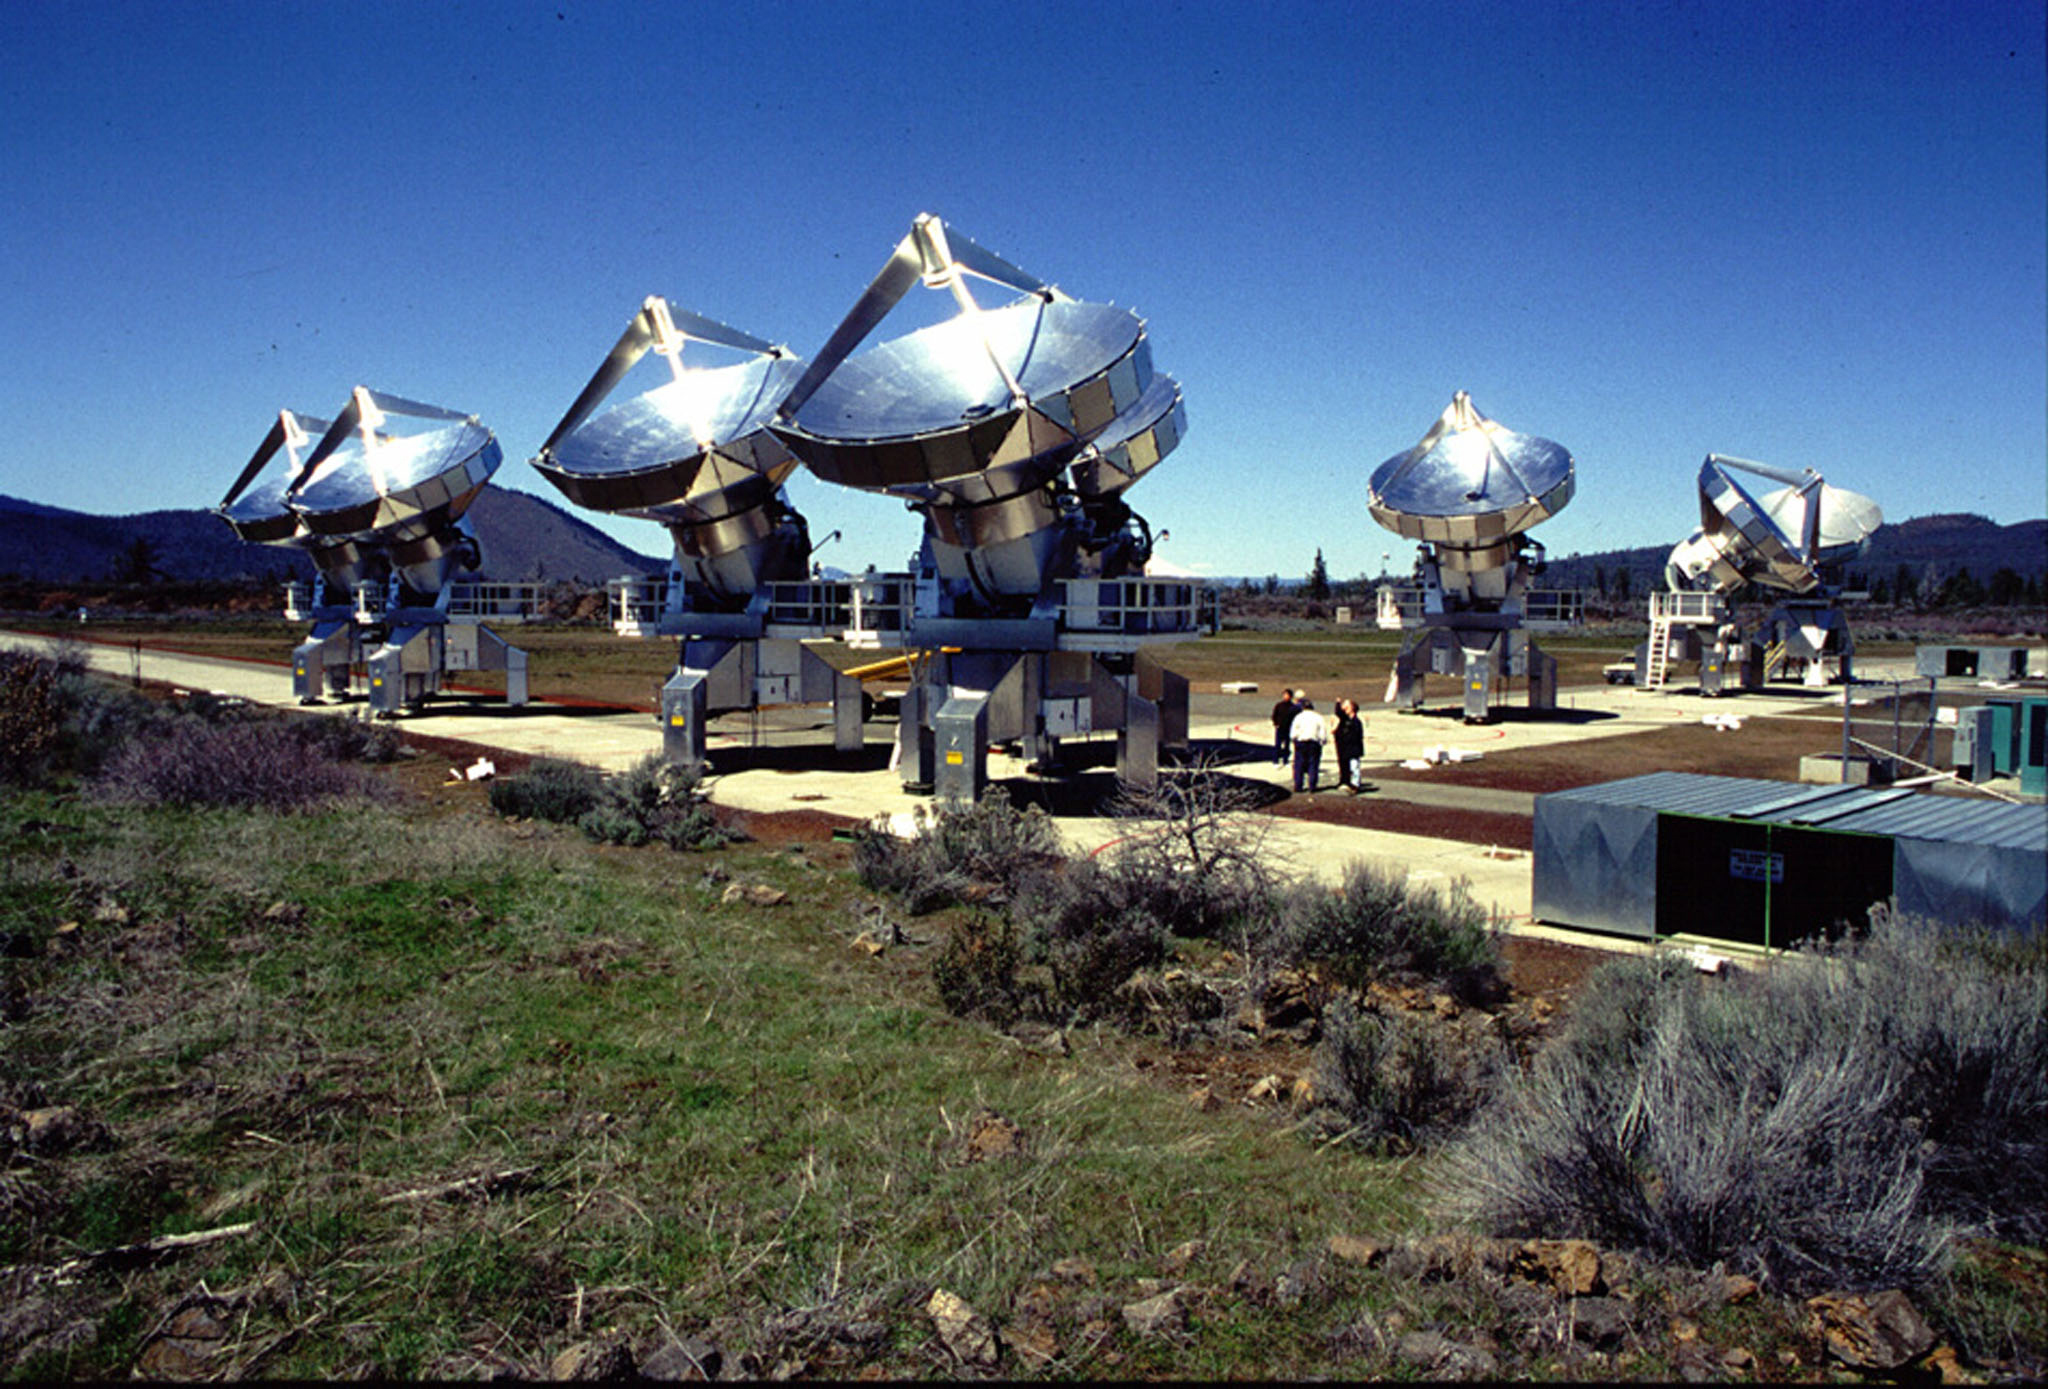 Alien contact could be 1,500 years away, say Cornell astronomers